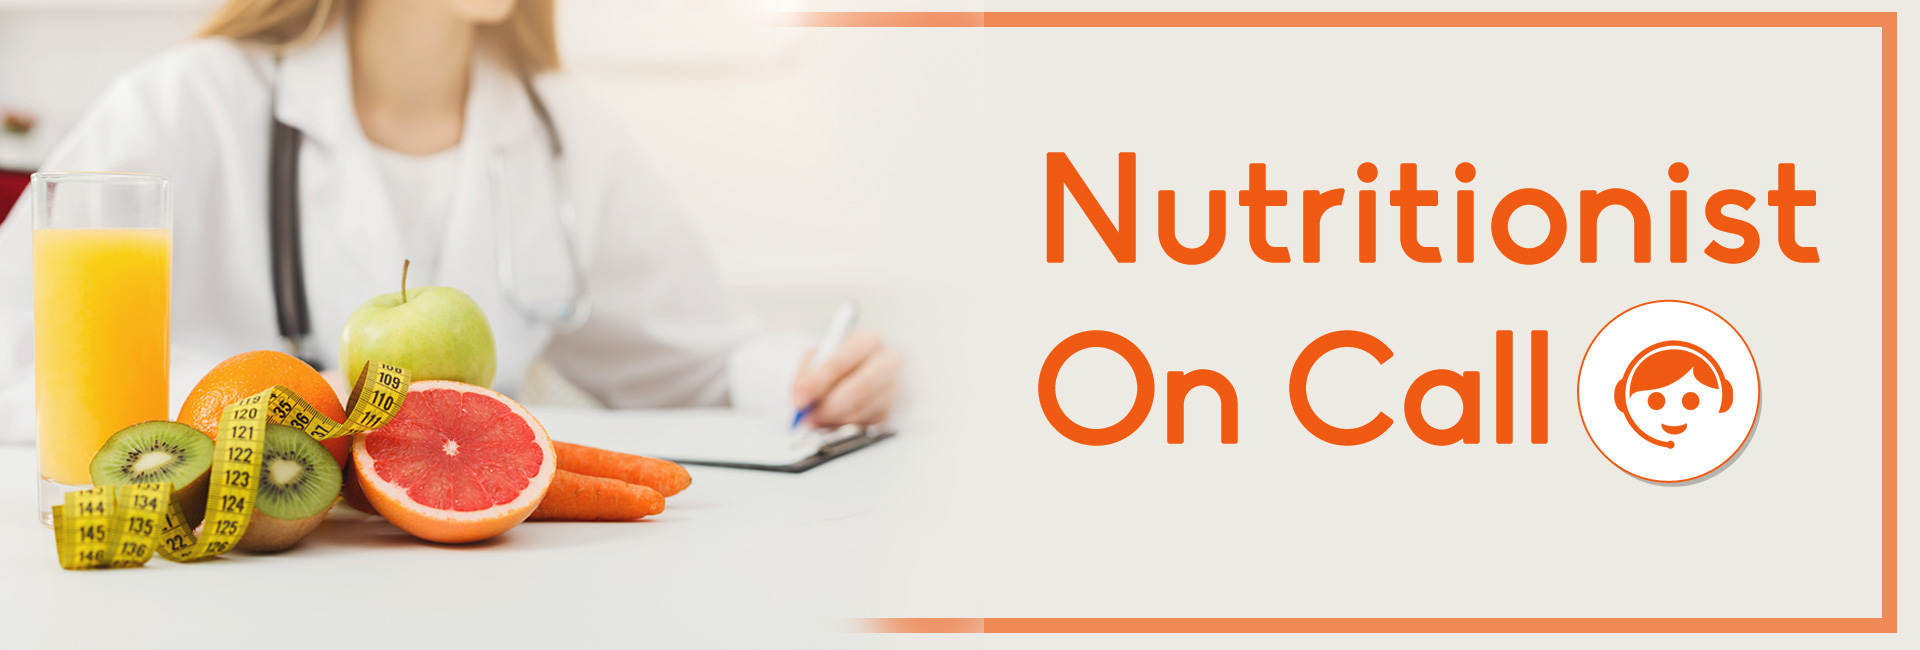 Nutritionist On Call In Belleterre